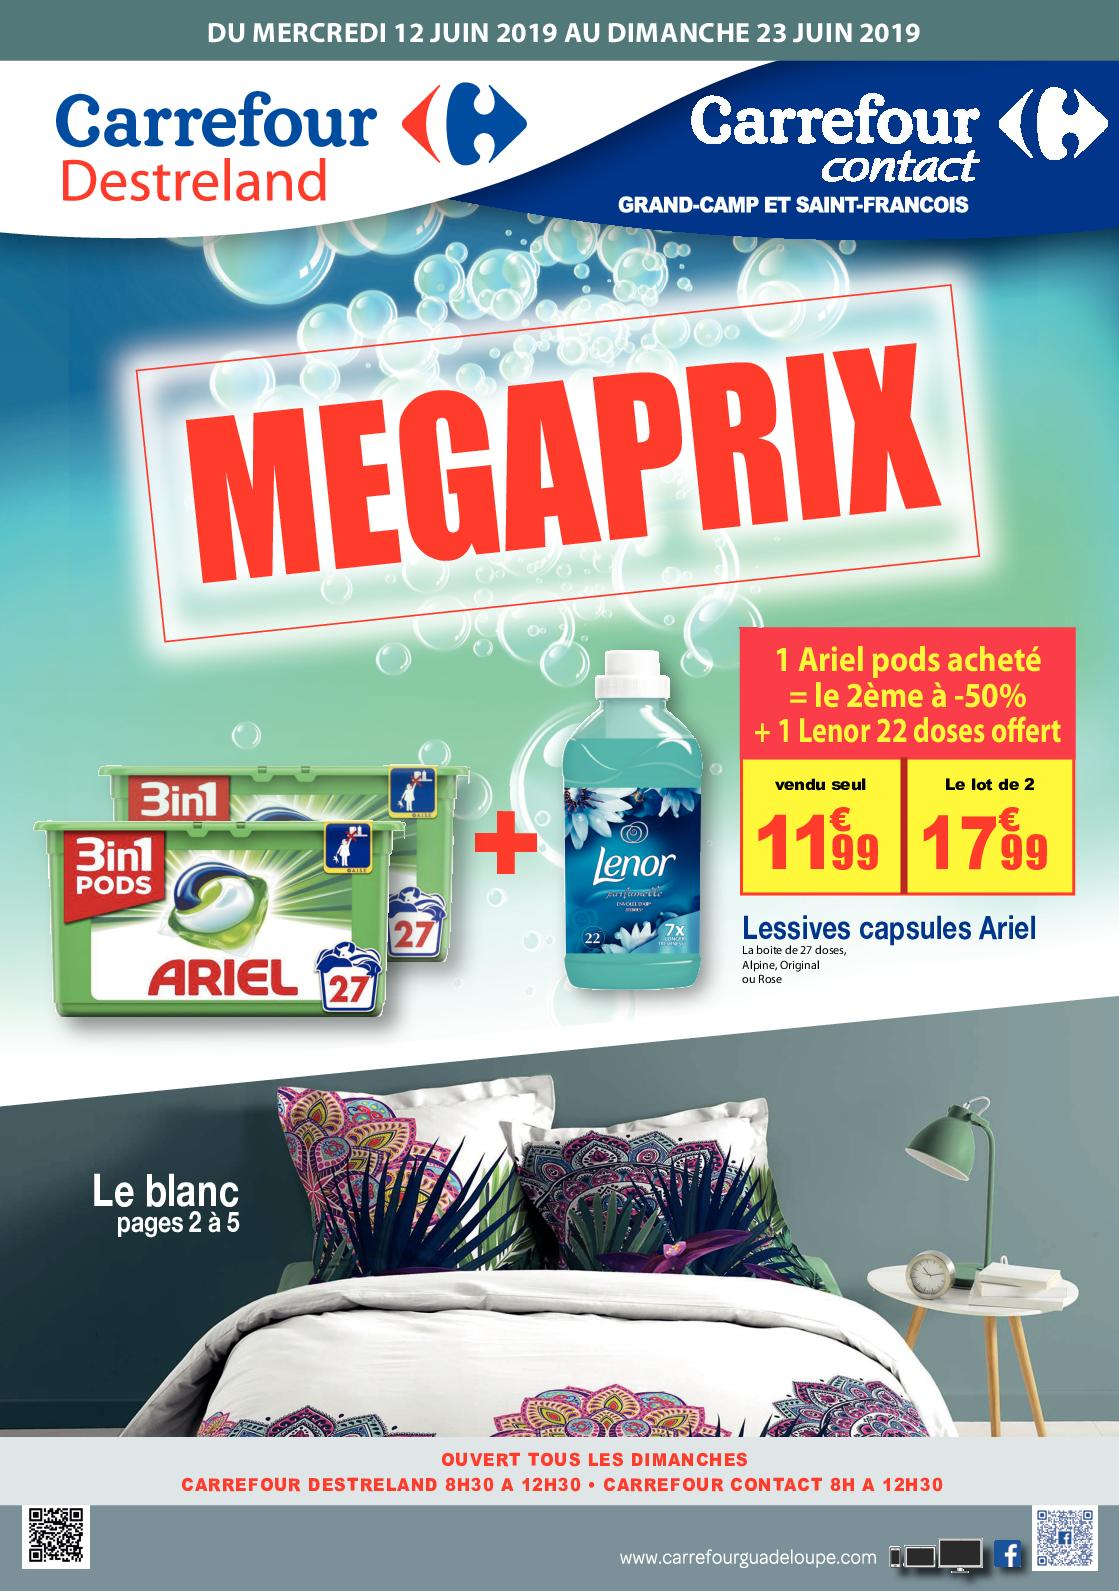 Calaméo - 20190612 Carrefour Destreland Megaprix Catalogue